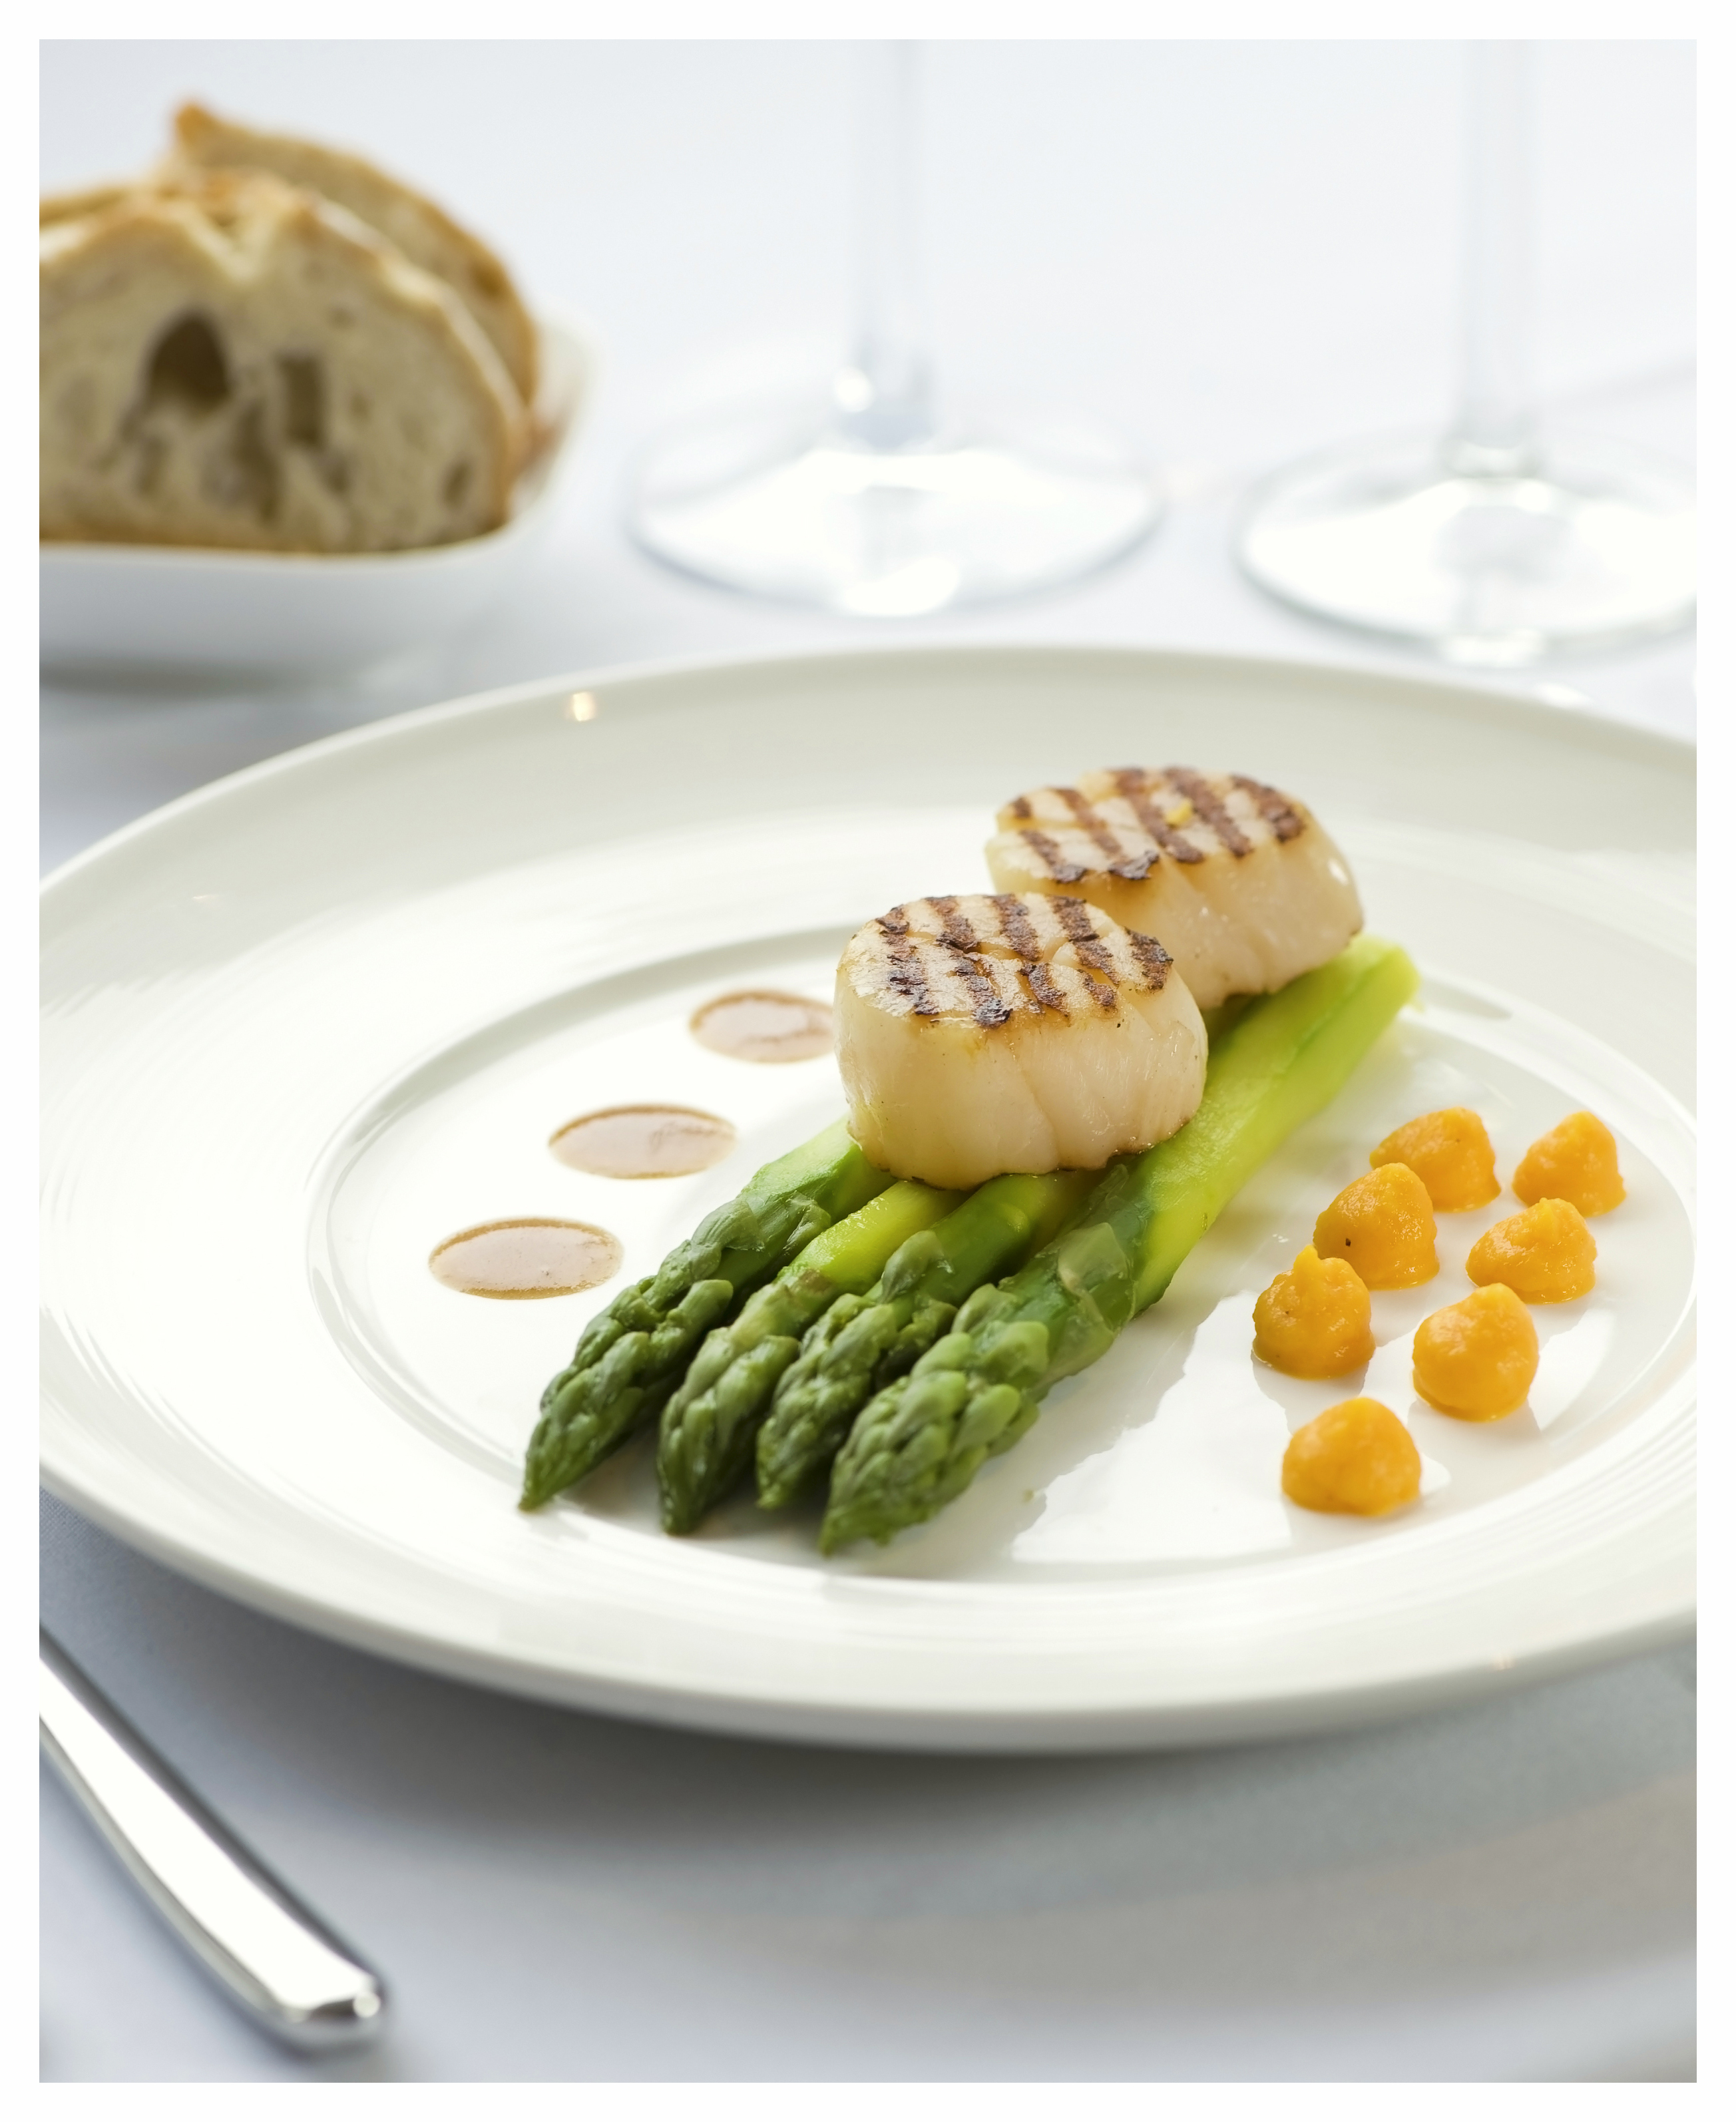 COOK & STYLE 2012 039 by Martimax.jpg